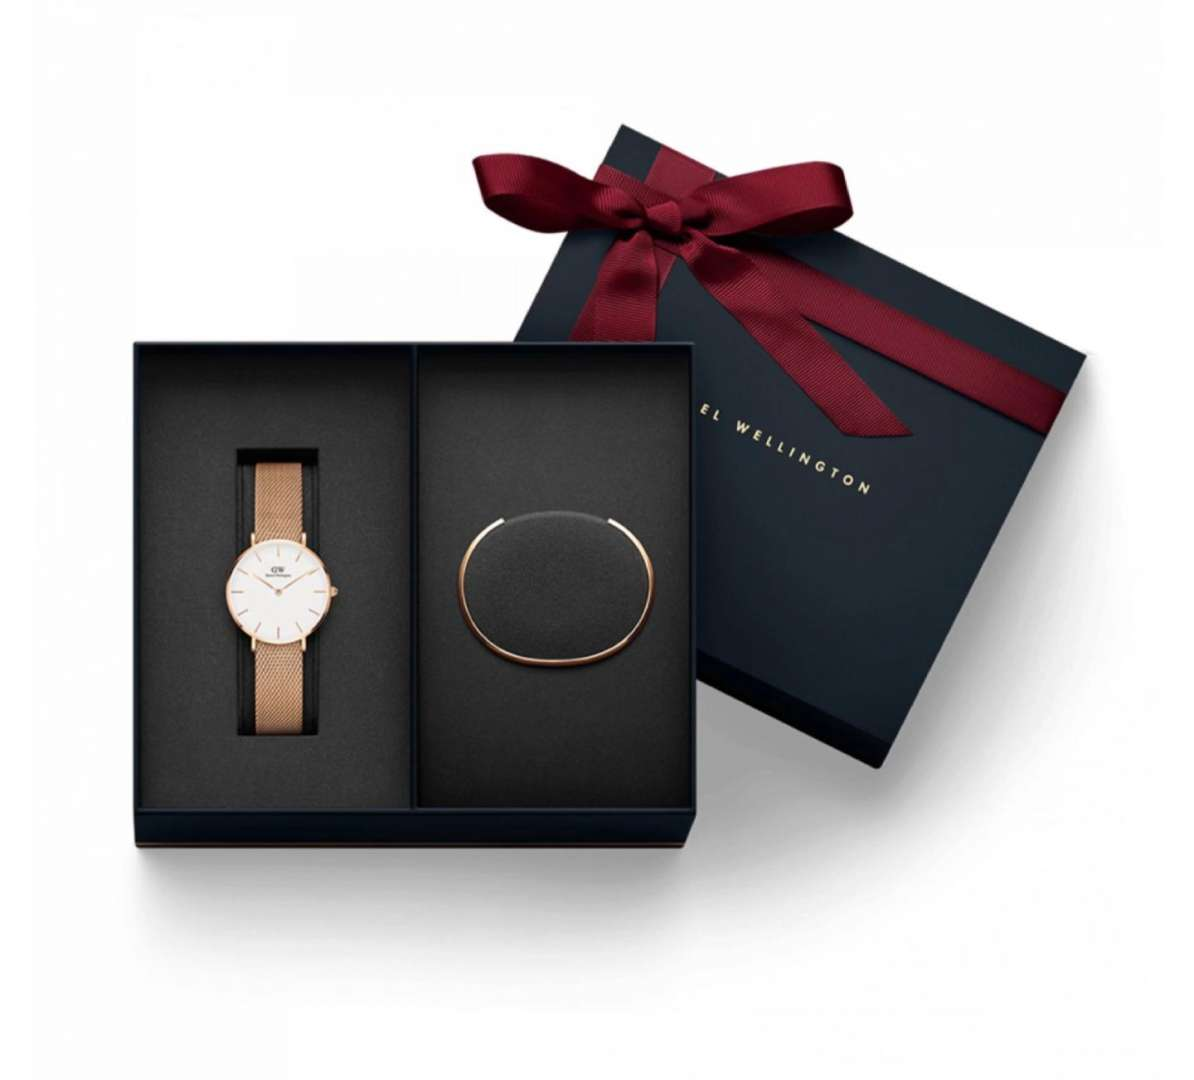 שעון יד אנלוגי daniel wellington dw00500020 דניאל וולינגטון